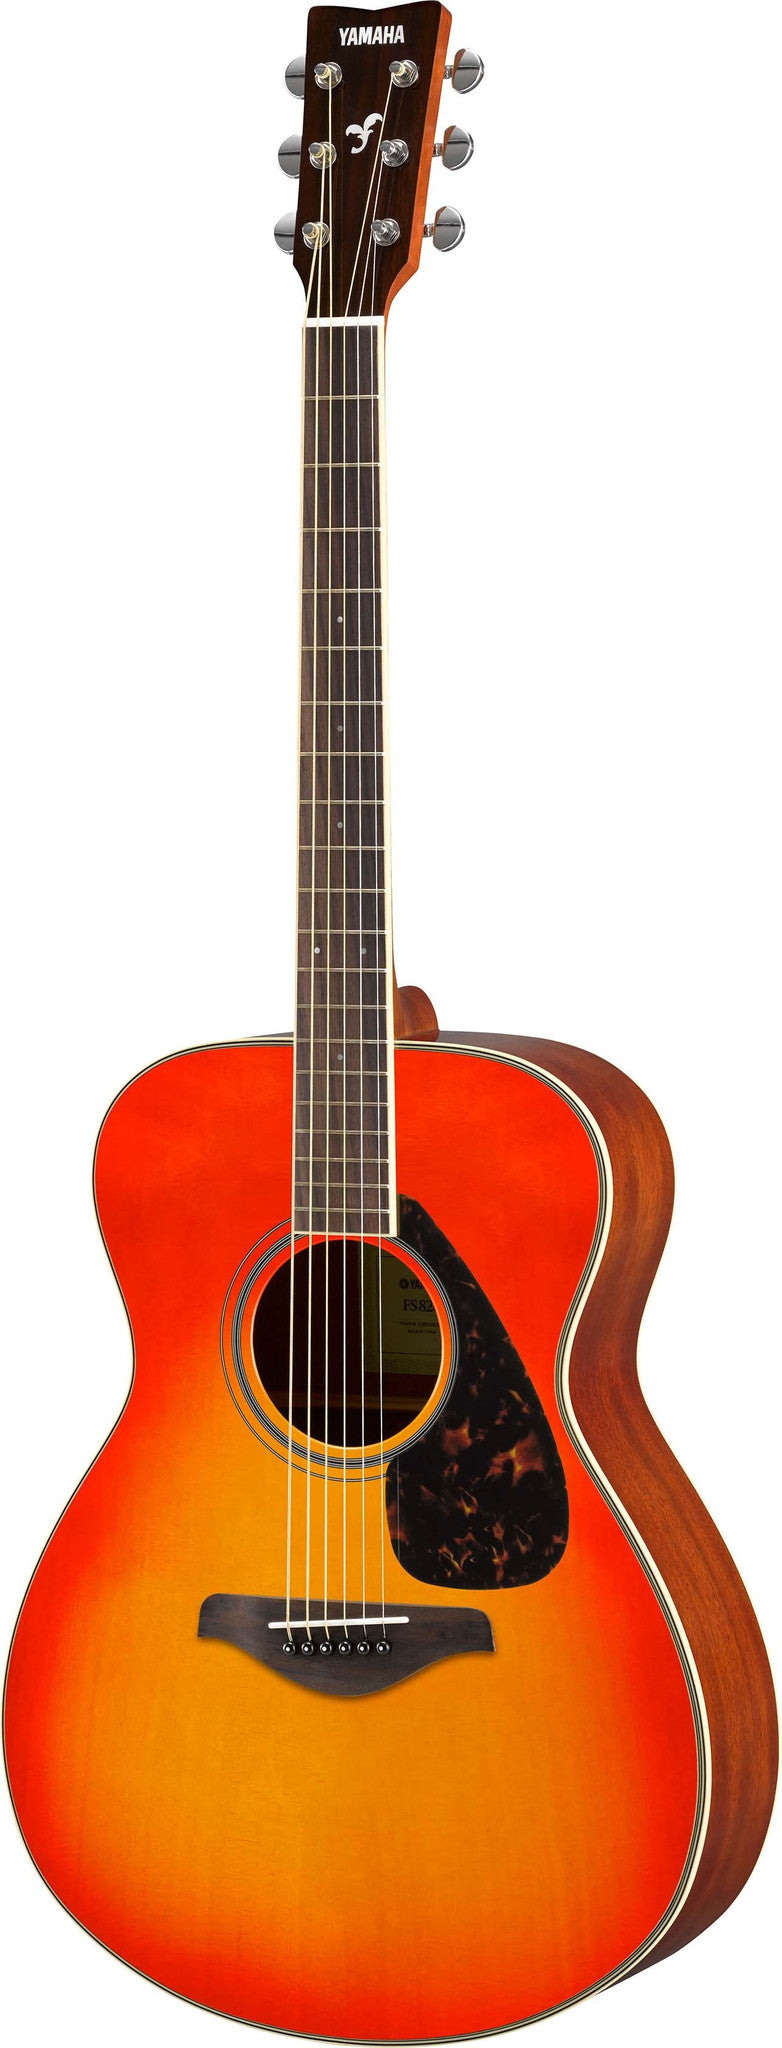 Yamaha FS820AB Small Body Acoustic Guitar